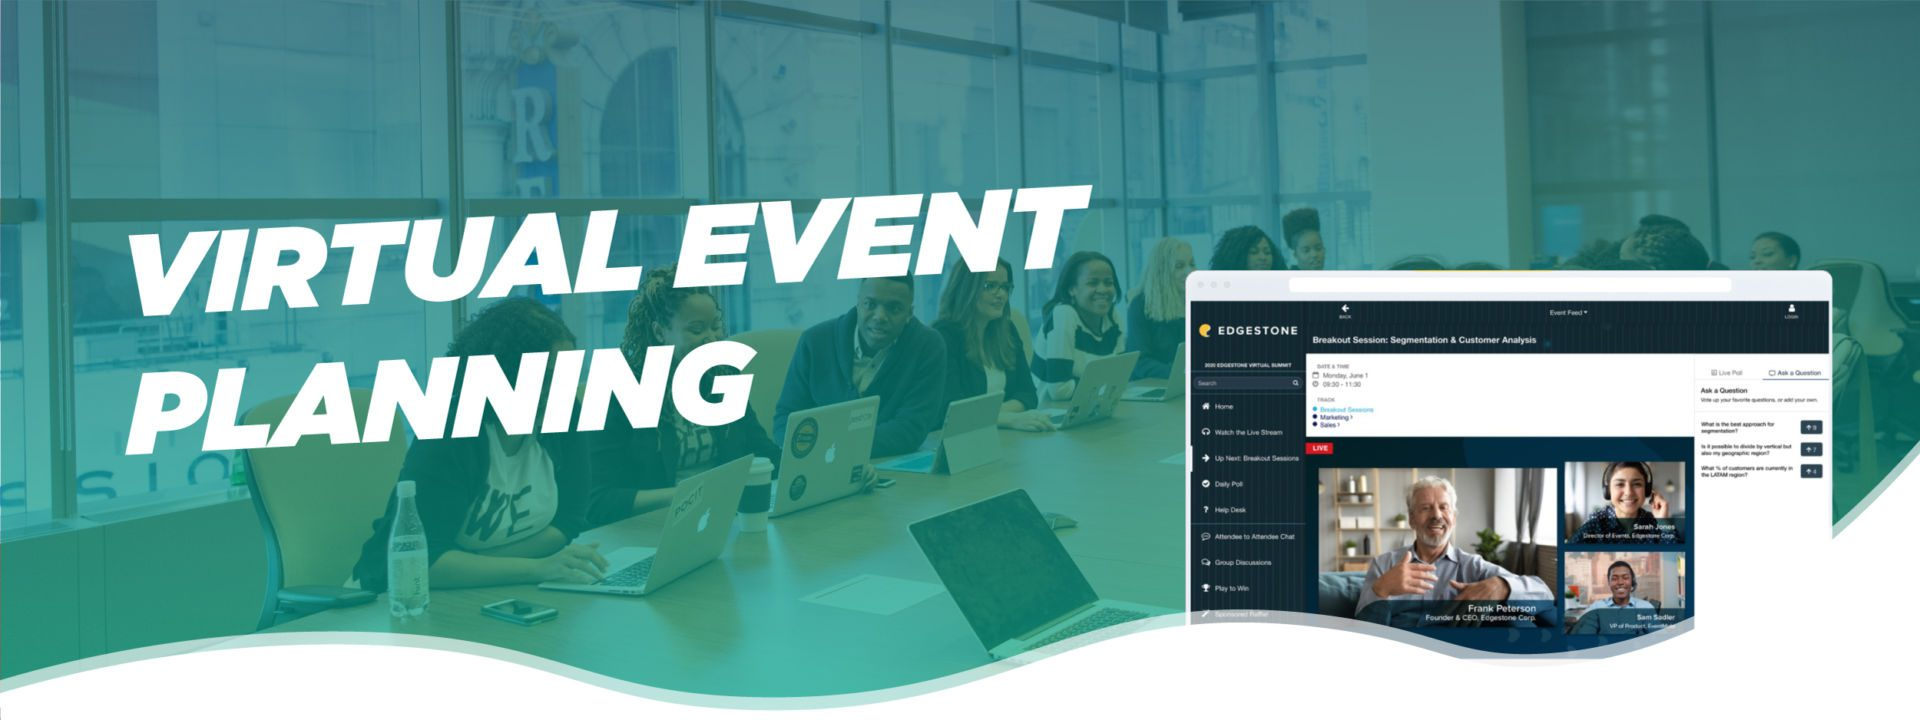 Craft a great event experience